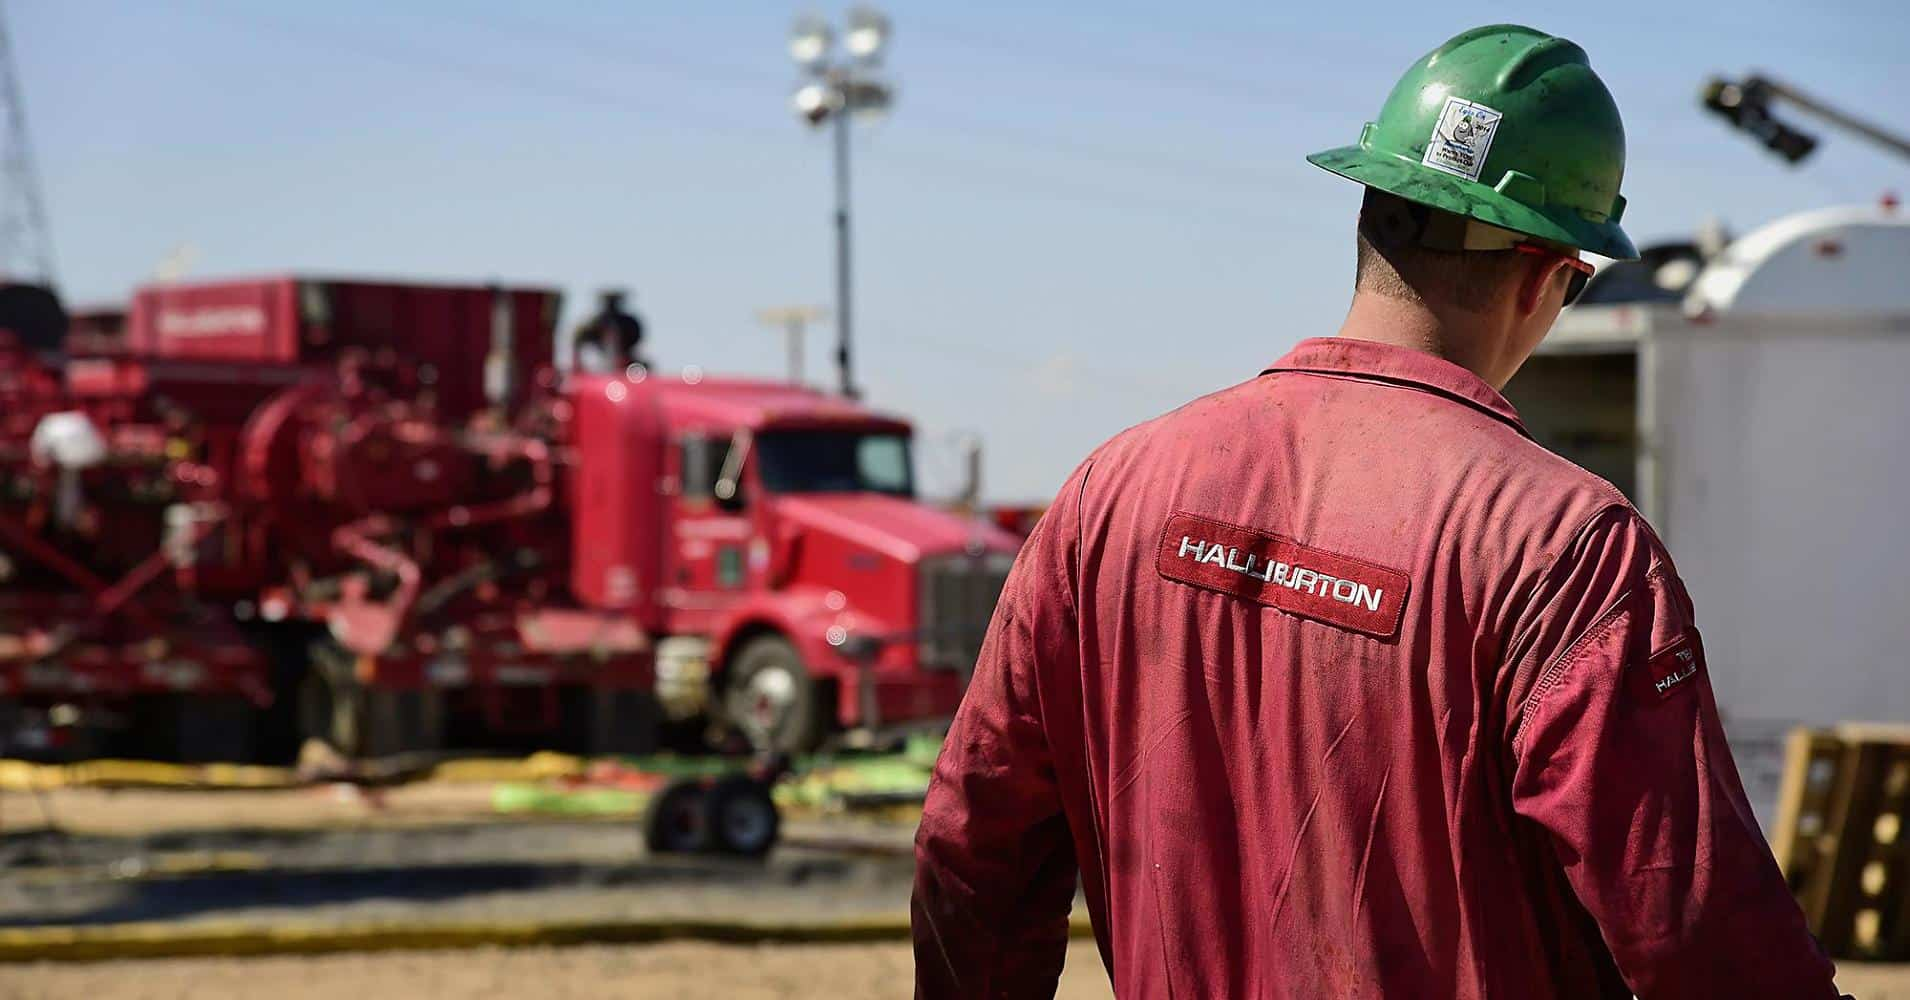 Us Caldwell Operator Assistant Ii Cementing: Halliburton Have Some Amazing Job Openings In Niksu